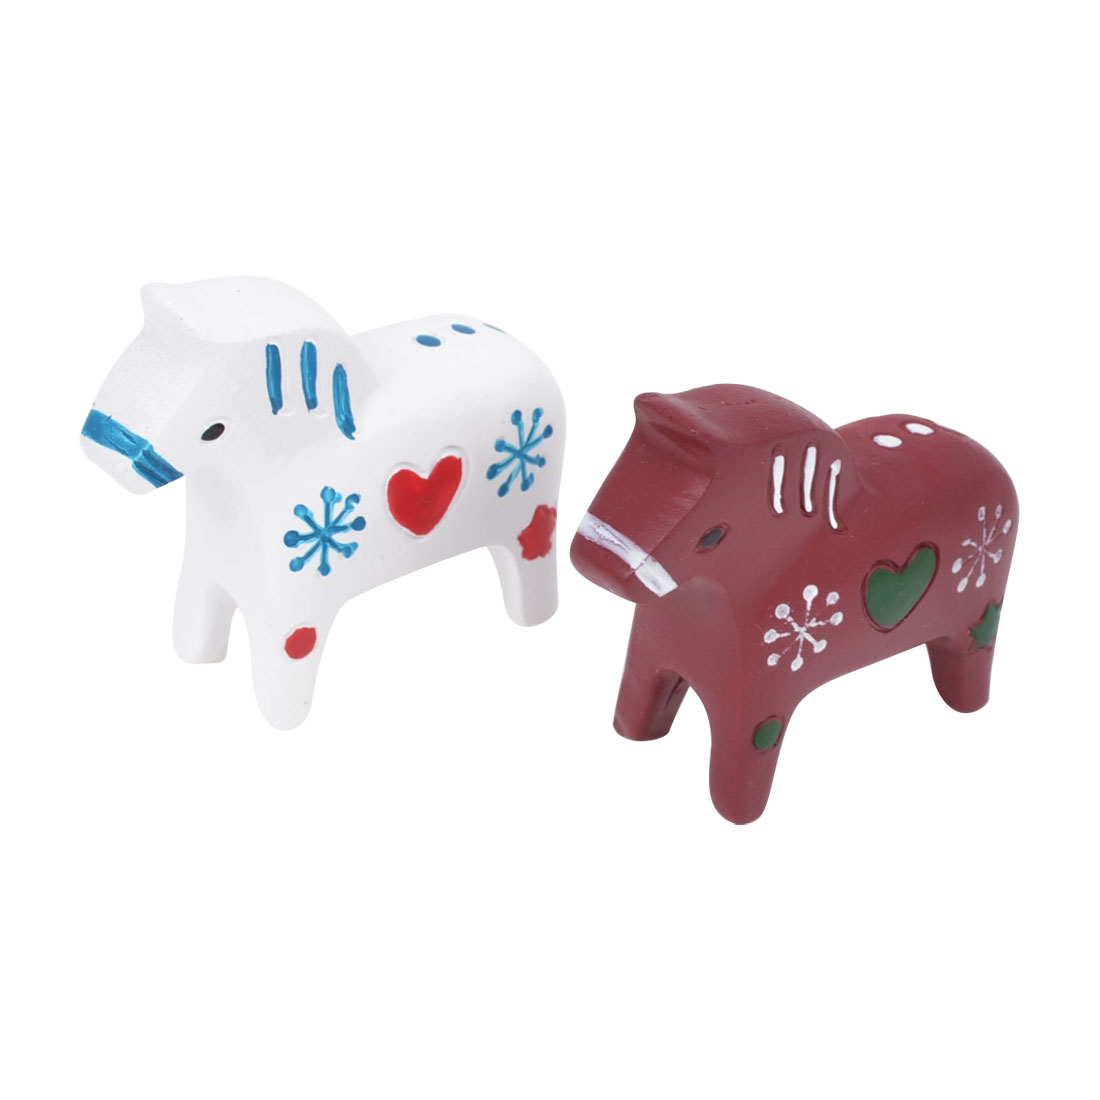 Christmas Adornment Burgundy White Resin Heart Crafts Horse Ornament 2 Pcs